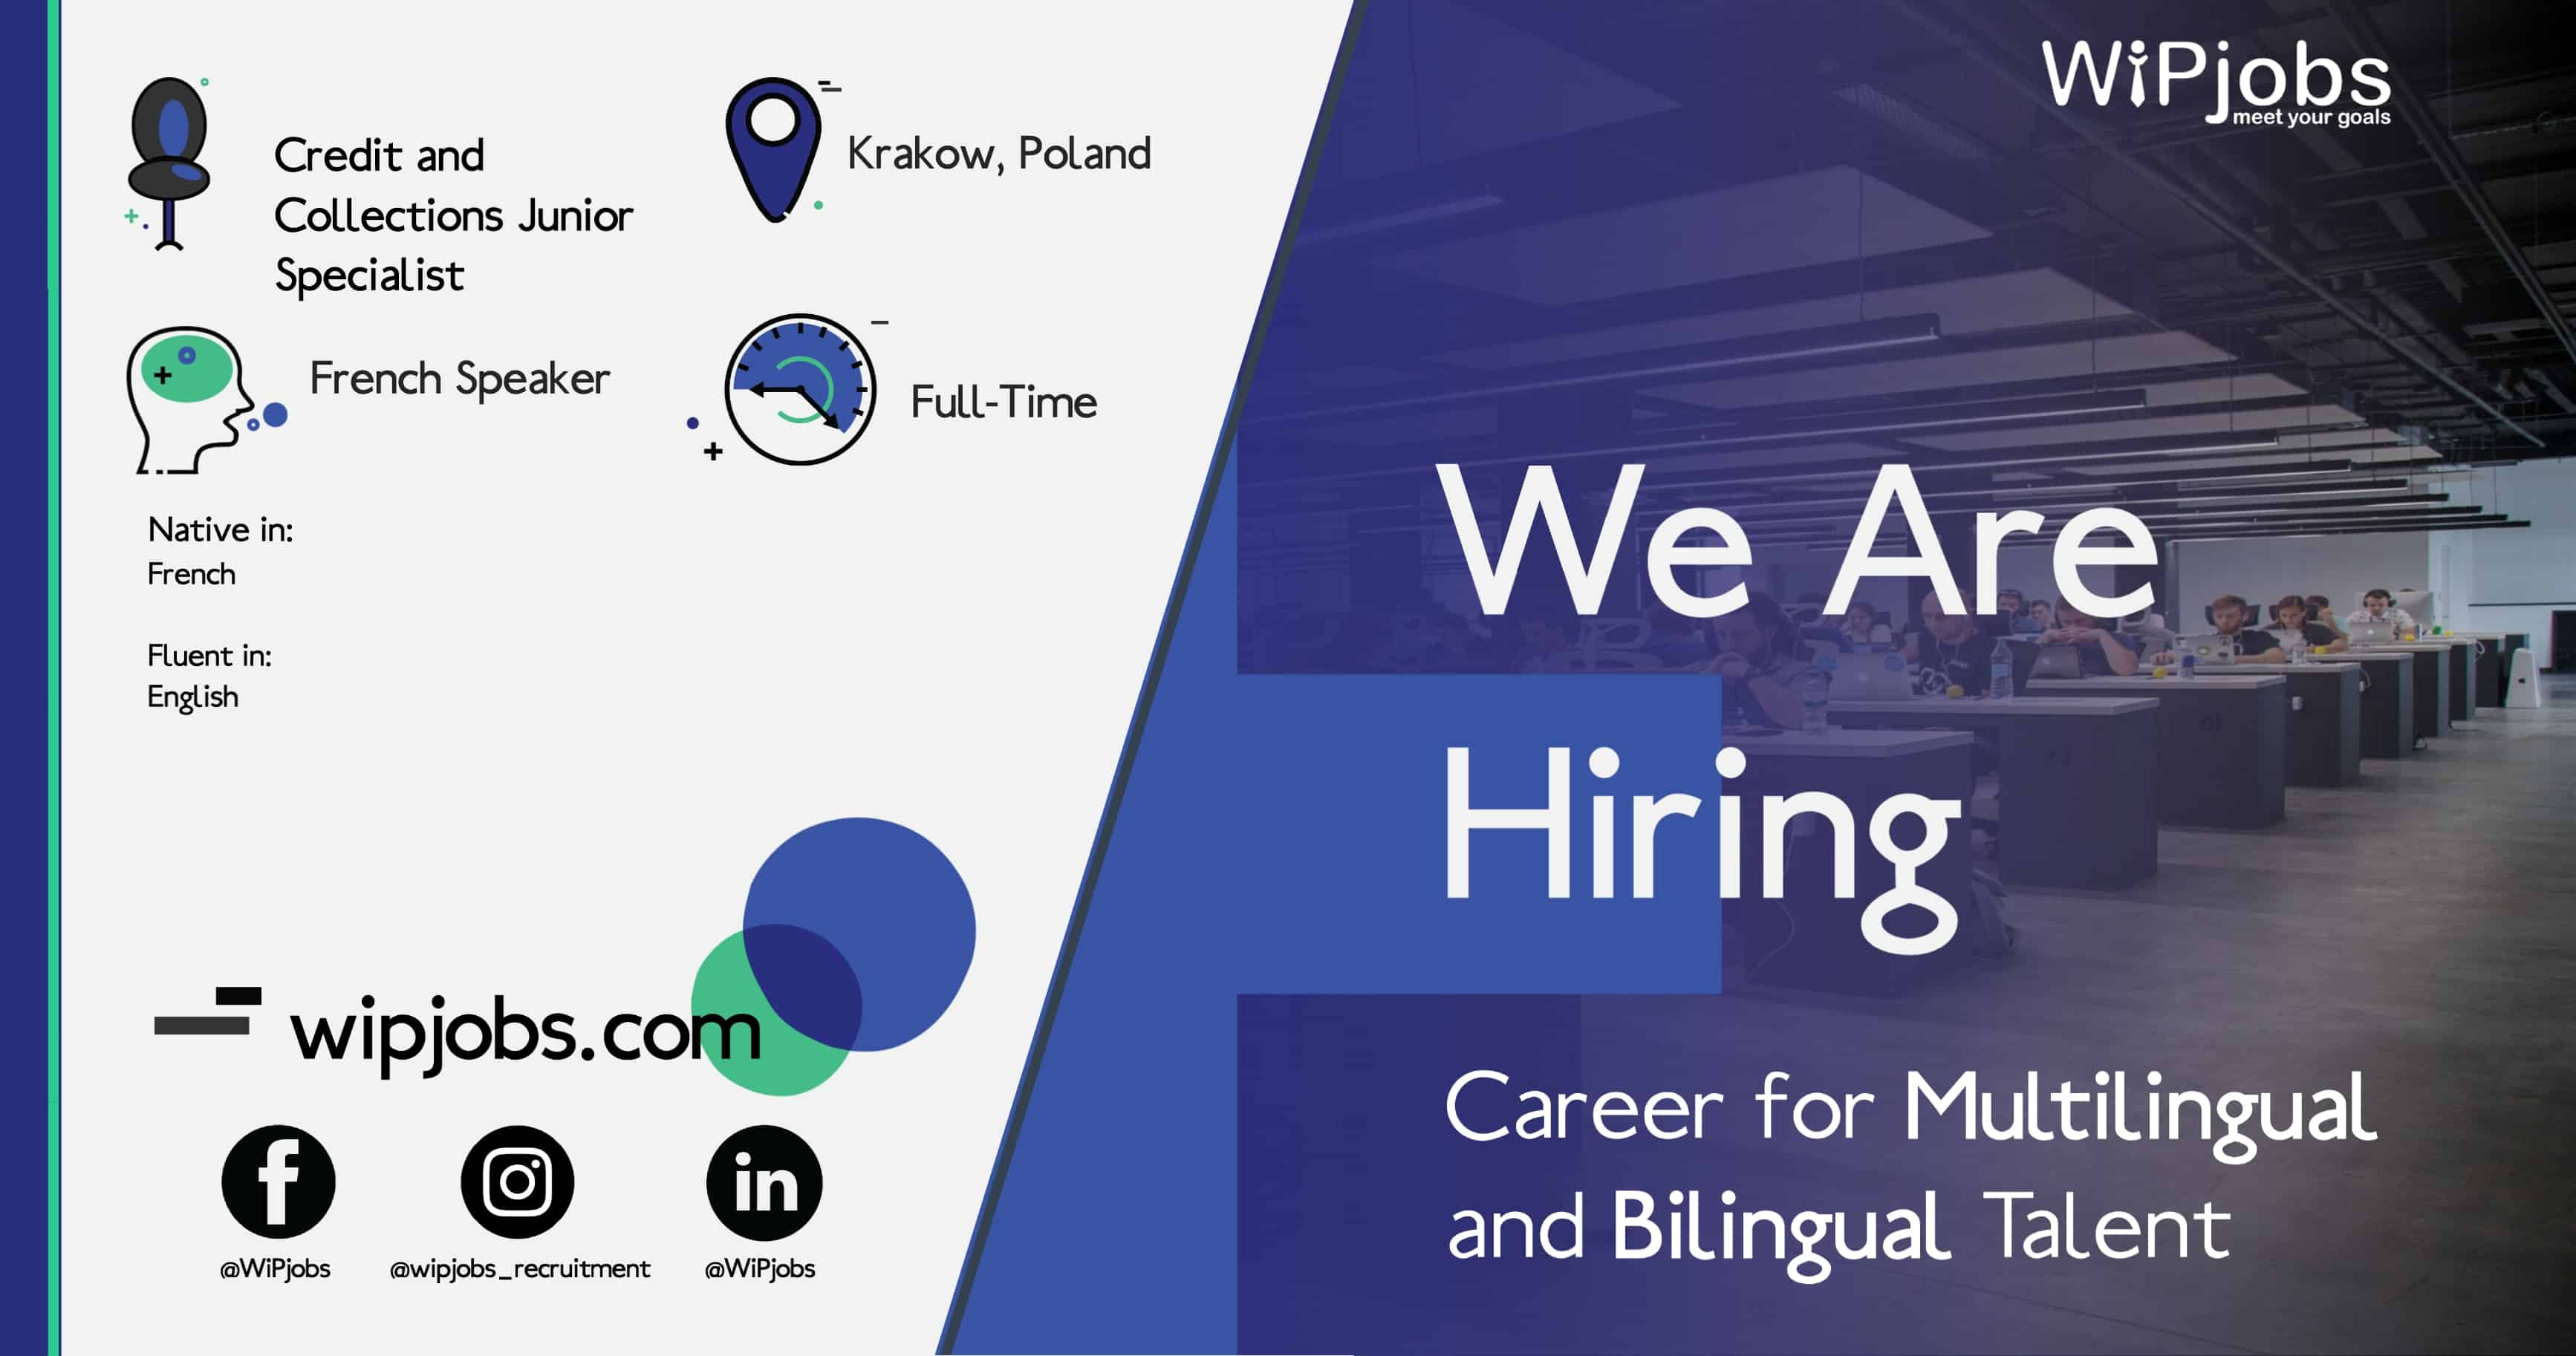 Credit and Collections Junior Specialist with French